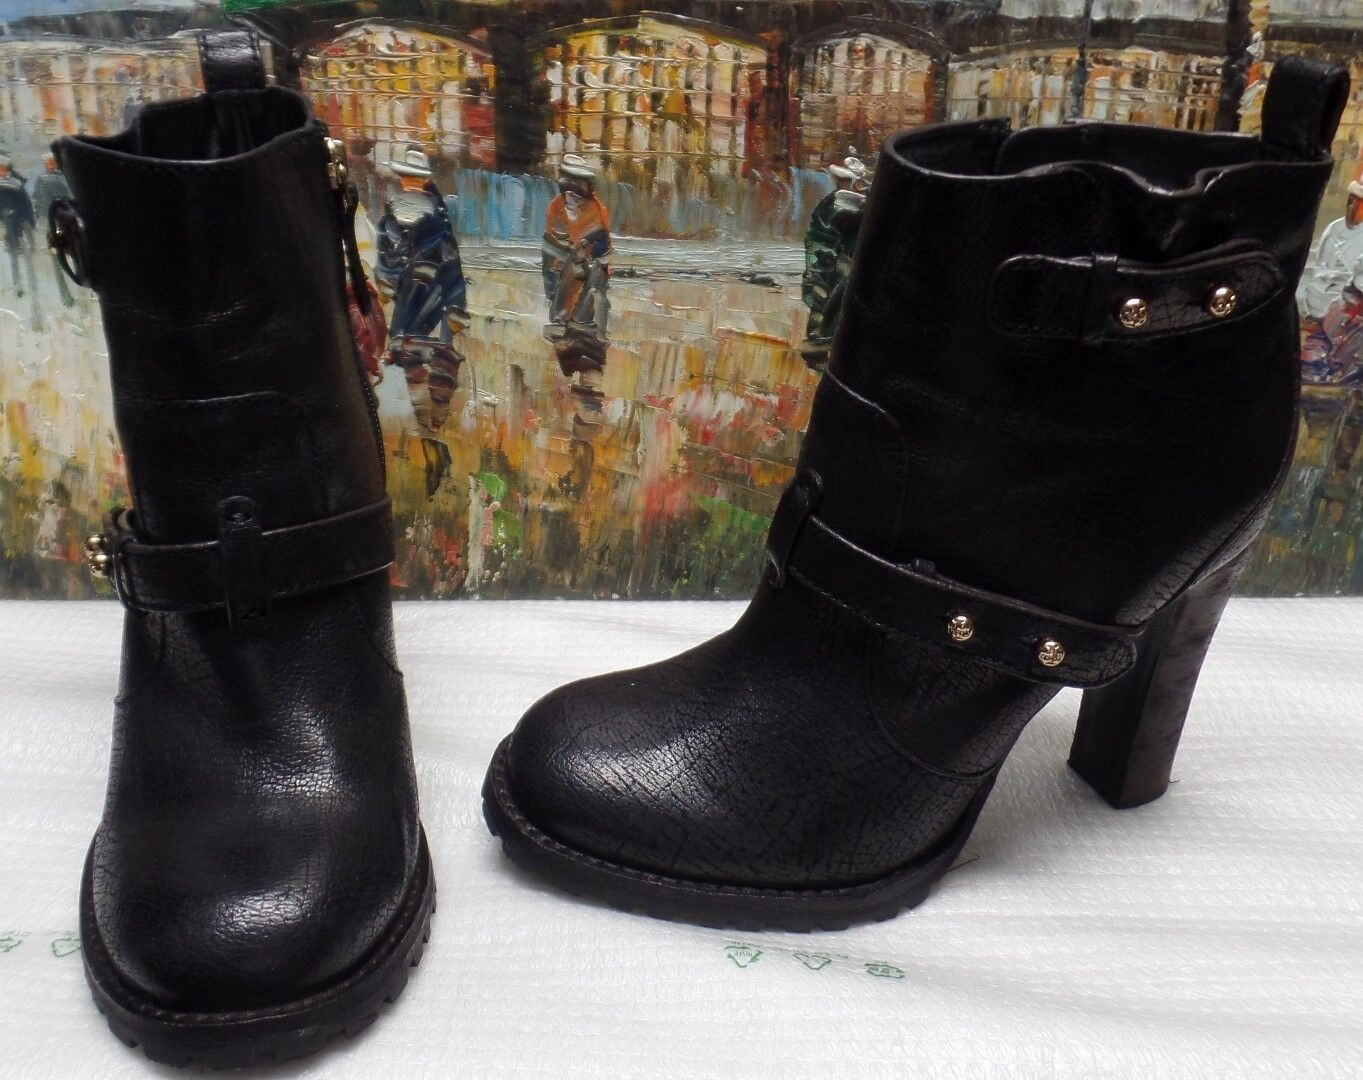 Tory Burch Landers Leather Bootie - Size 9.5M -  450